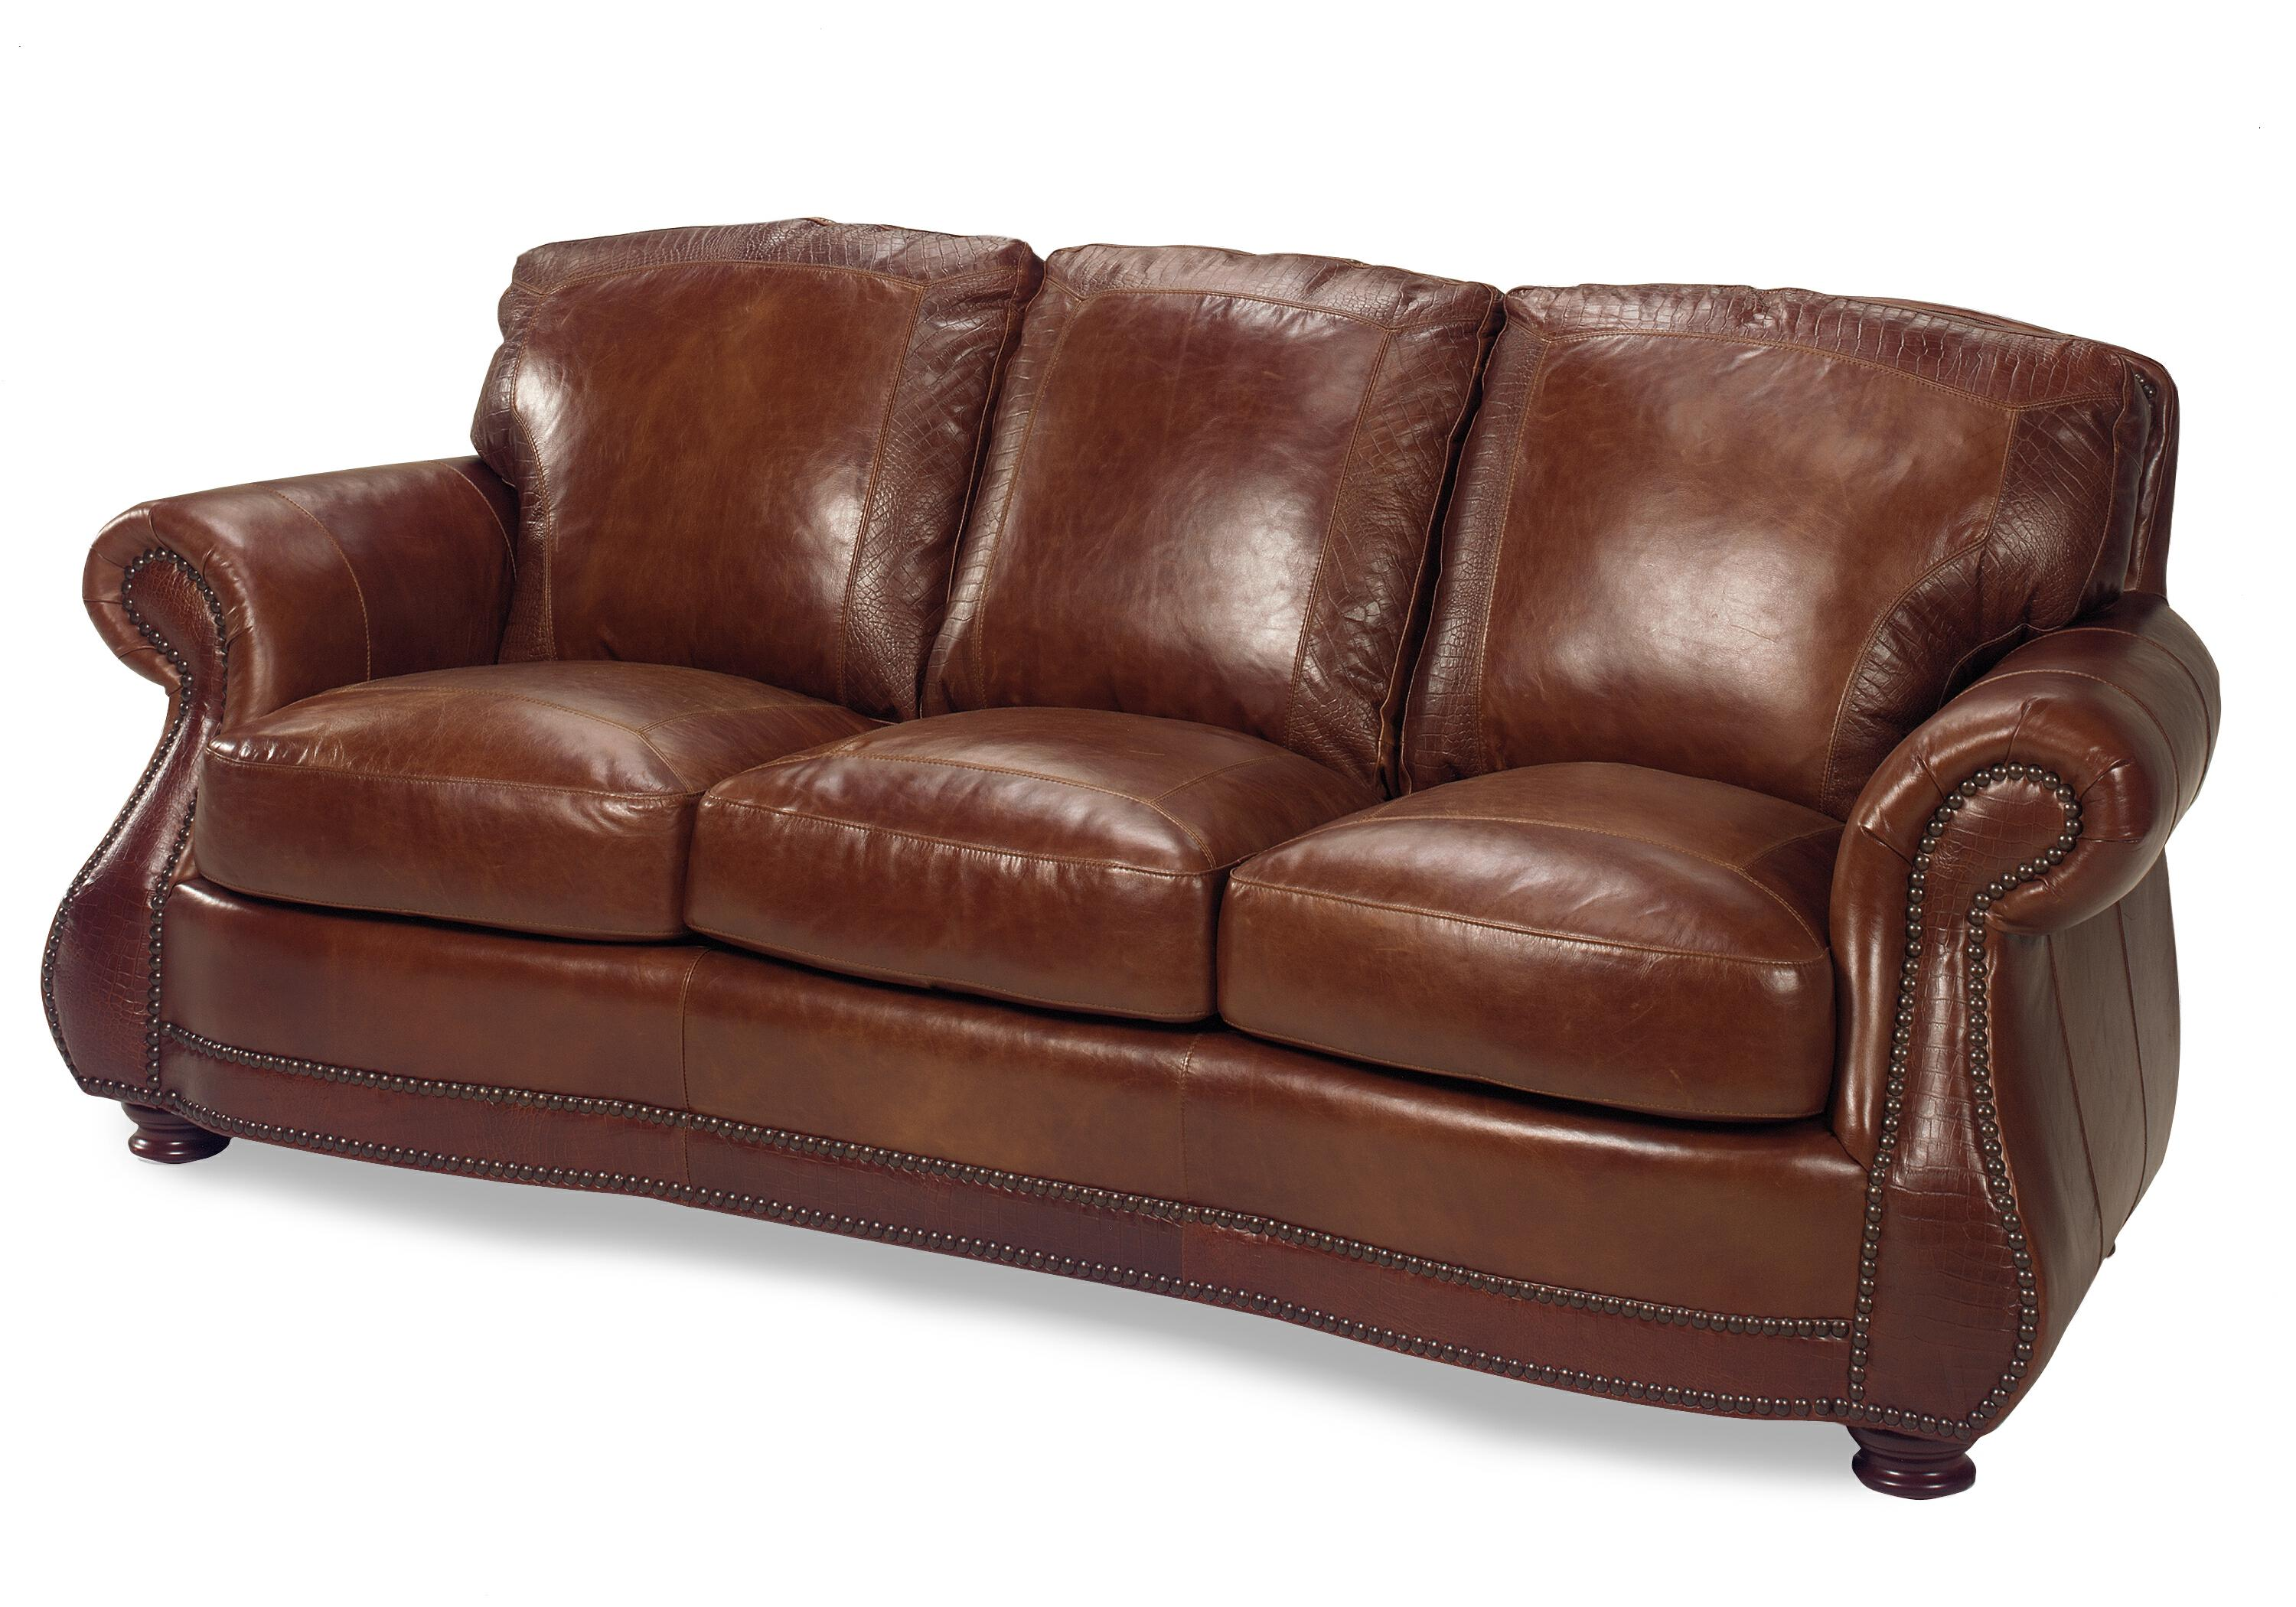 Sofa Dreams Outlet Usa Premium Leather Miskelly Furniture Jackson Pearl Madison